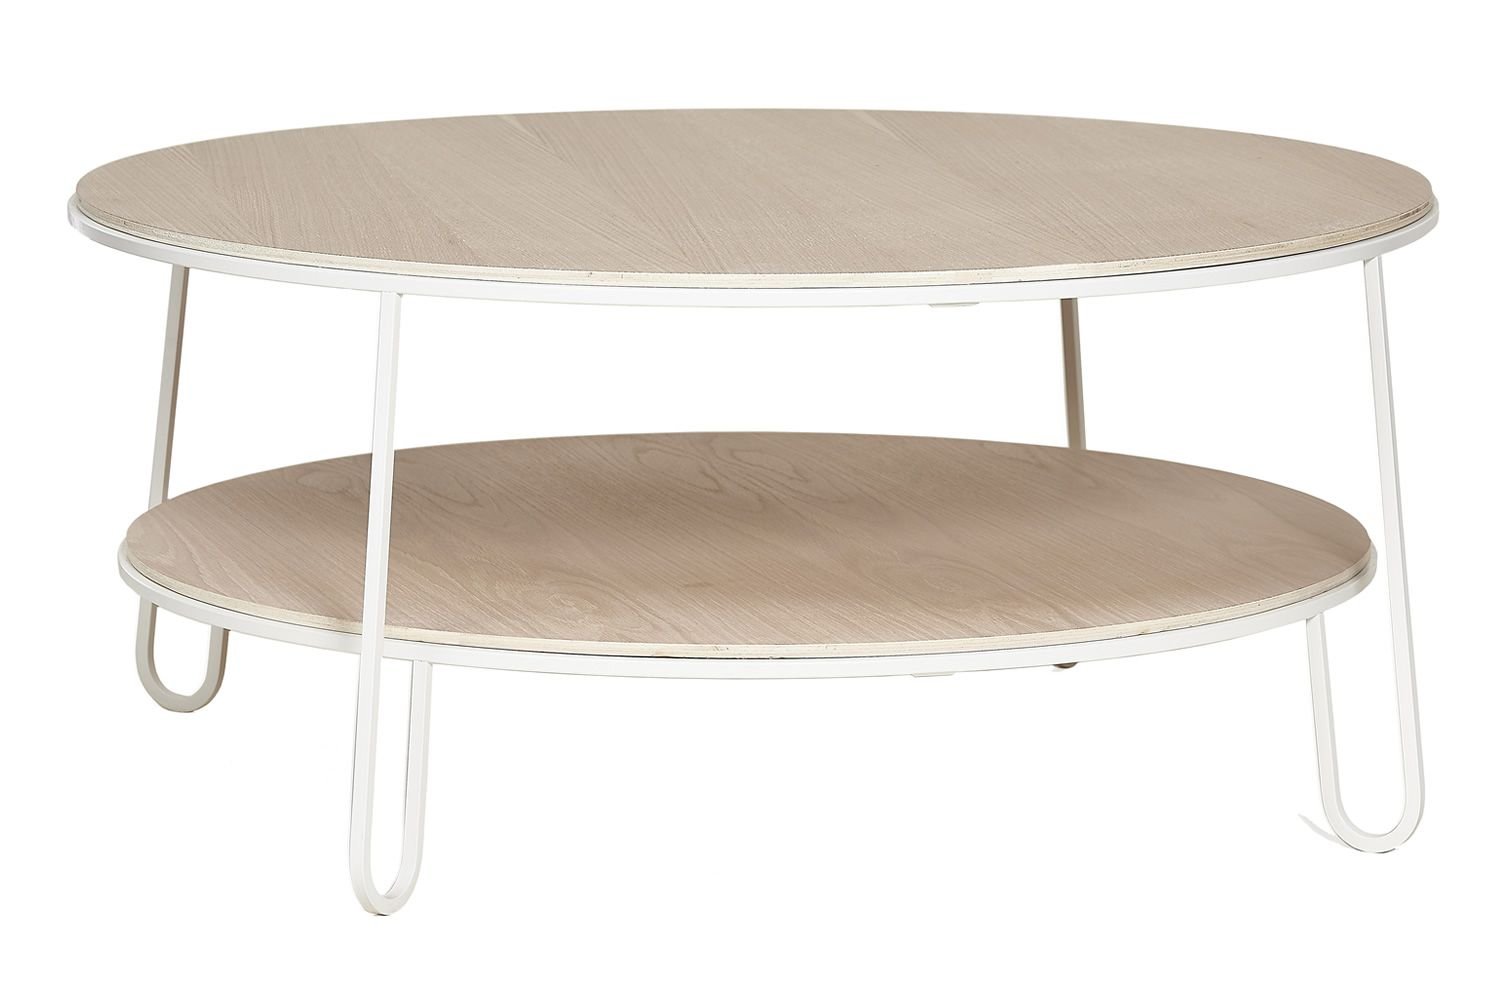 Table Basse Bois Metal Blanc Table Basse Ronde En Verre Design Df